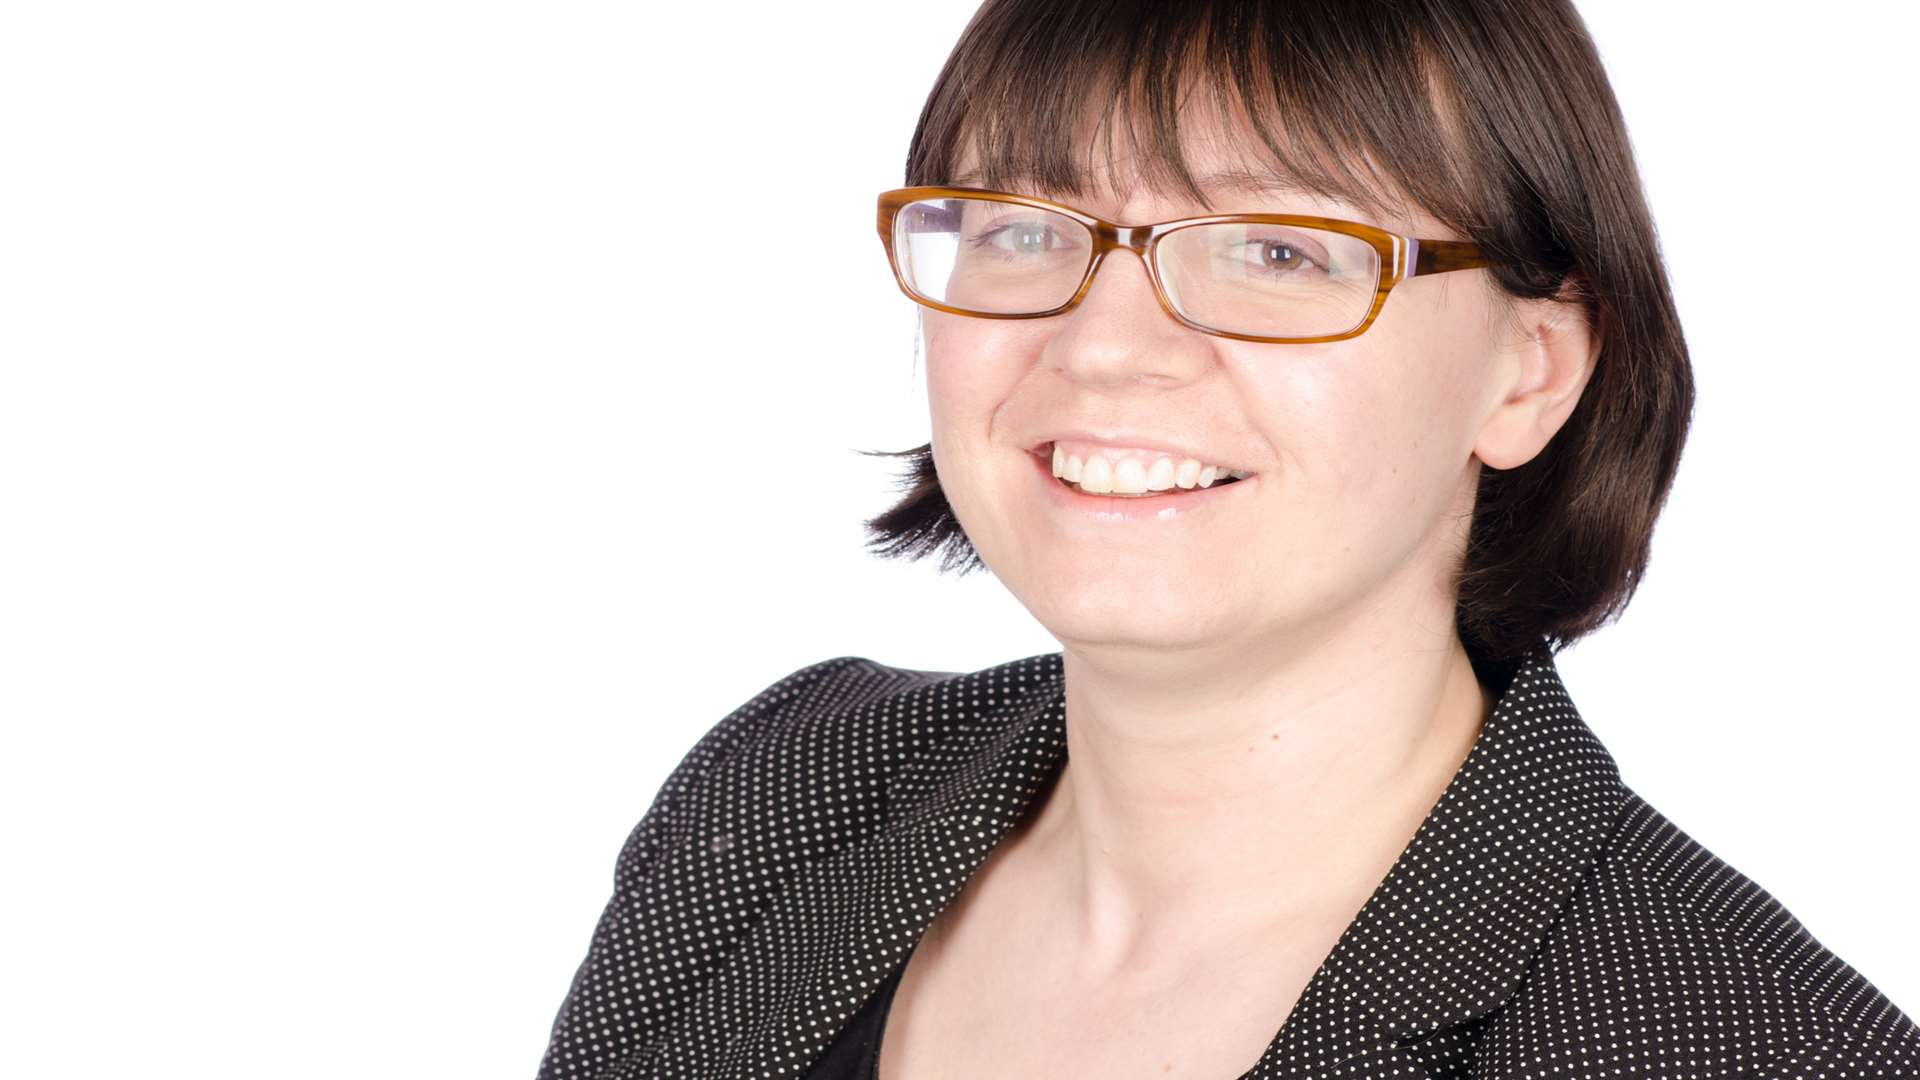 Brachers partner and head of employment law Catherine Daw